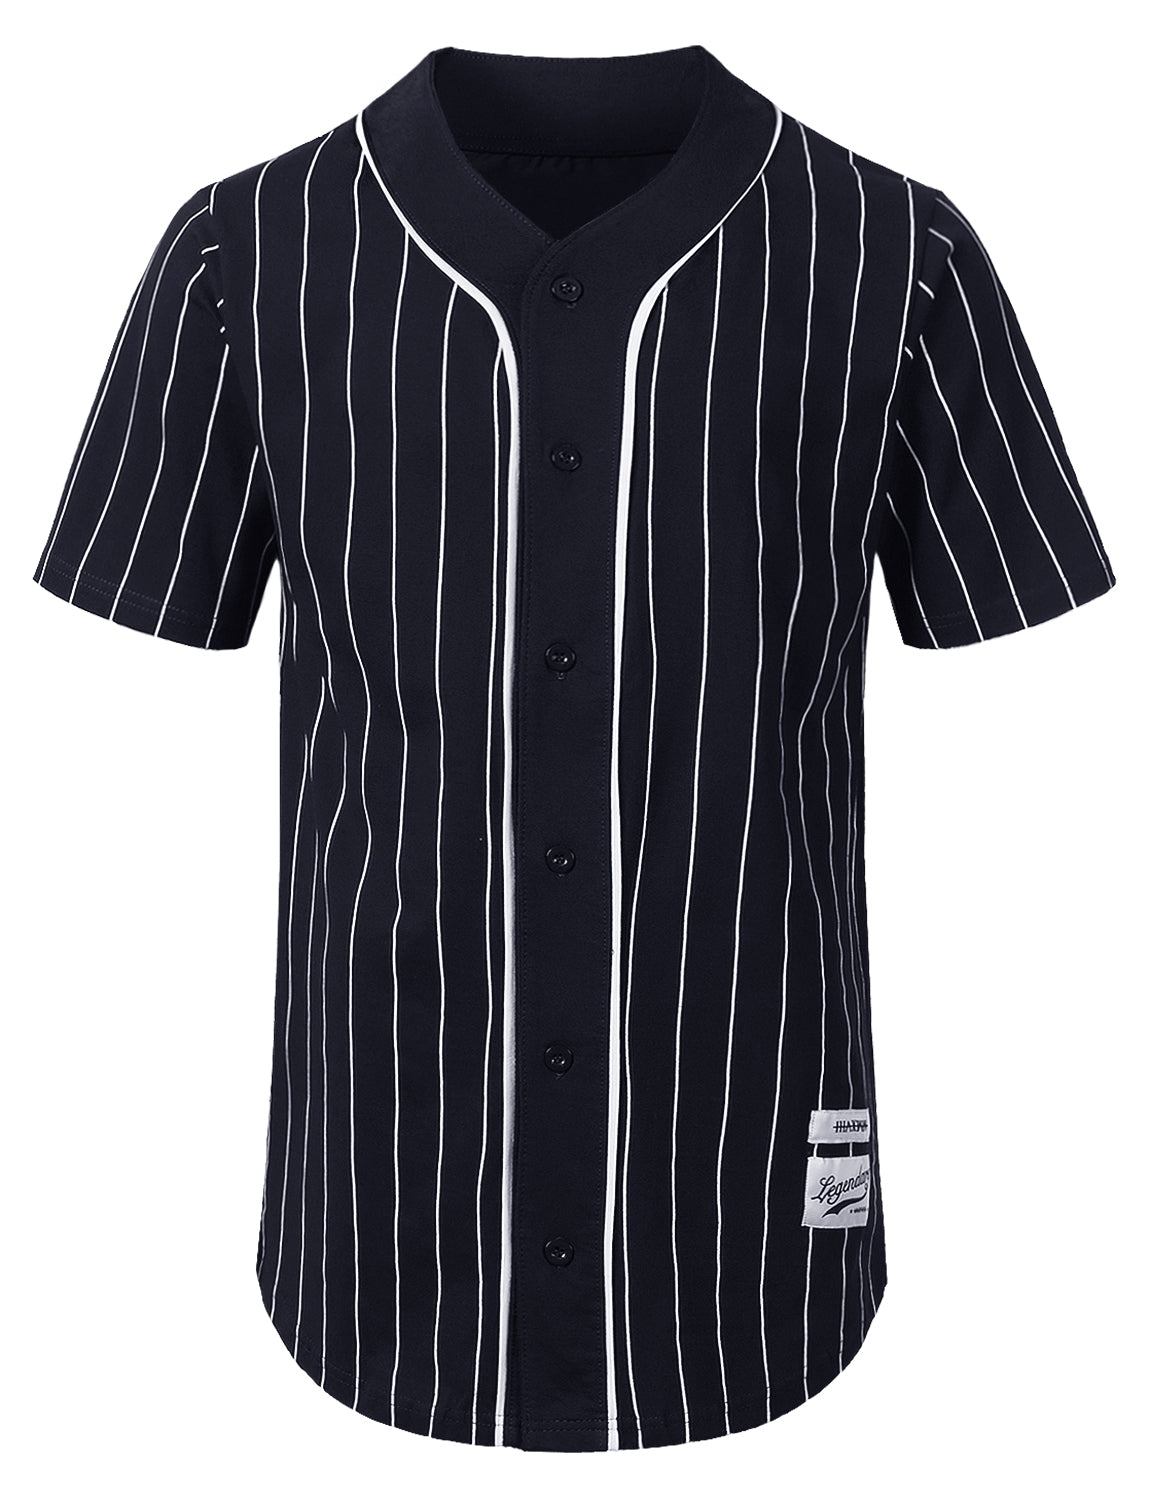 NAVY Striped Baseball Jersey Shirt - URBANCREWS